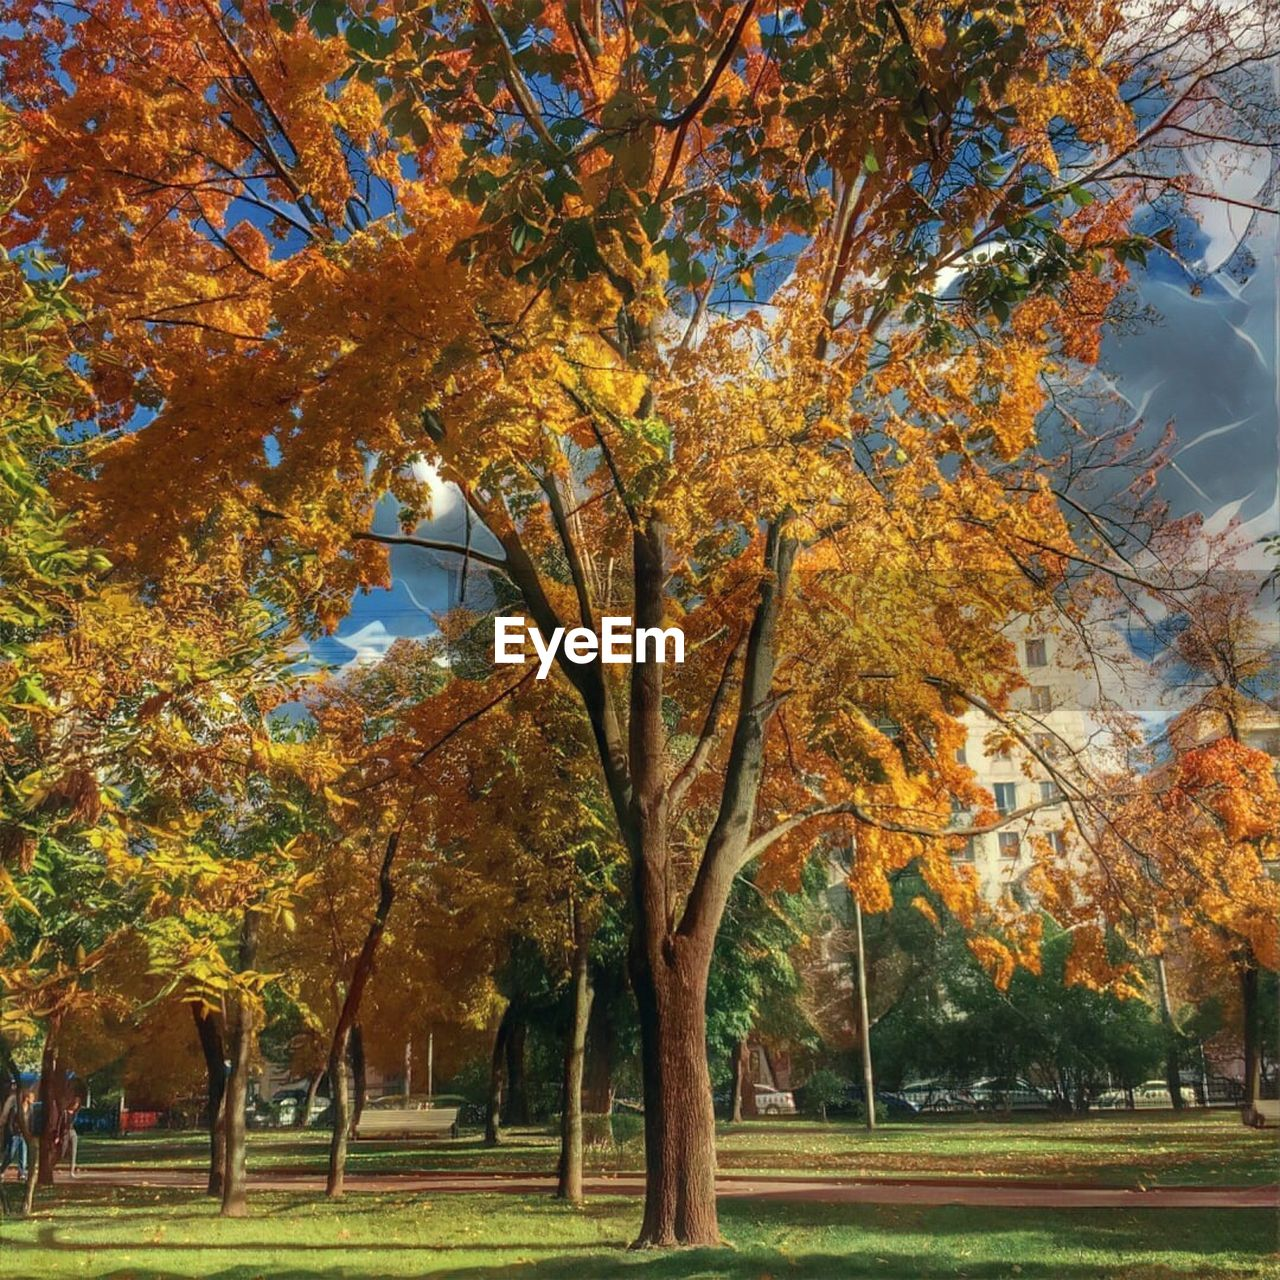 autumn, tree, leaf, change, nature, beauty in nature, scenics, branch, tranquility, tranquil scene, park - man made space, maple tree, outdoors, tree trunk, no people, landscape, day, bare tree, beauty, grass, maple, sky